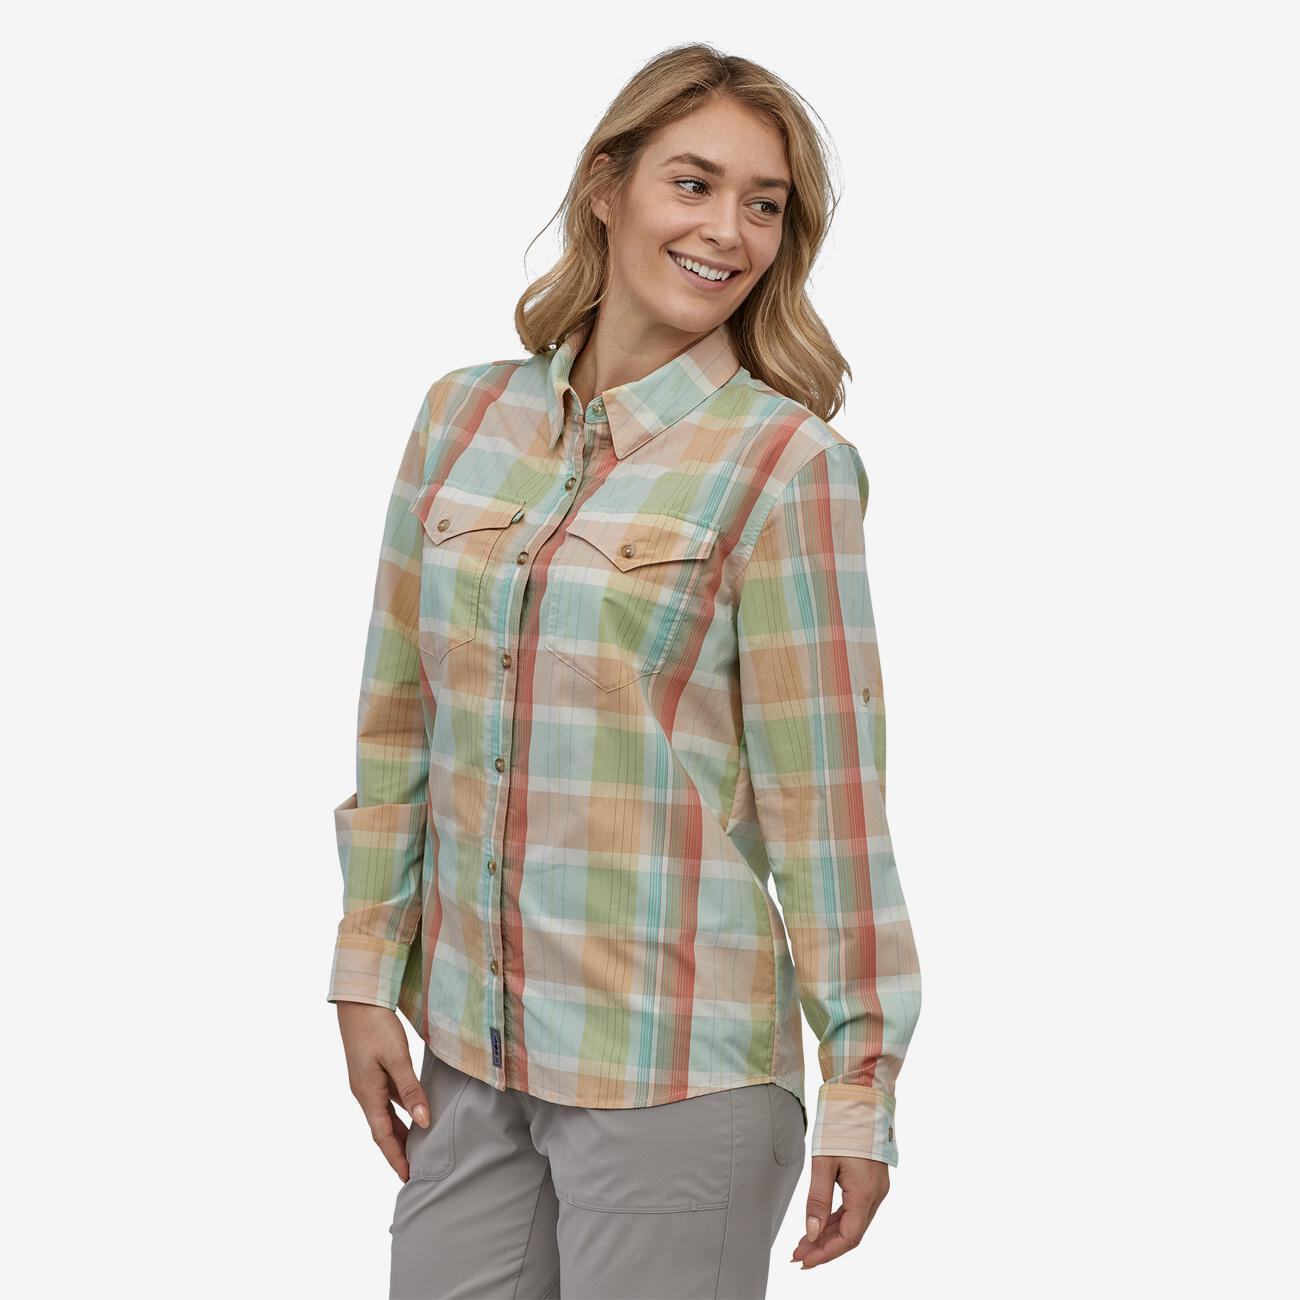 Women's Long-Sleeved Sun Stretch Shirt